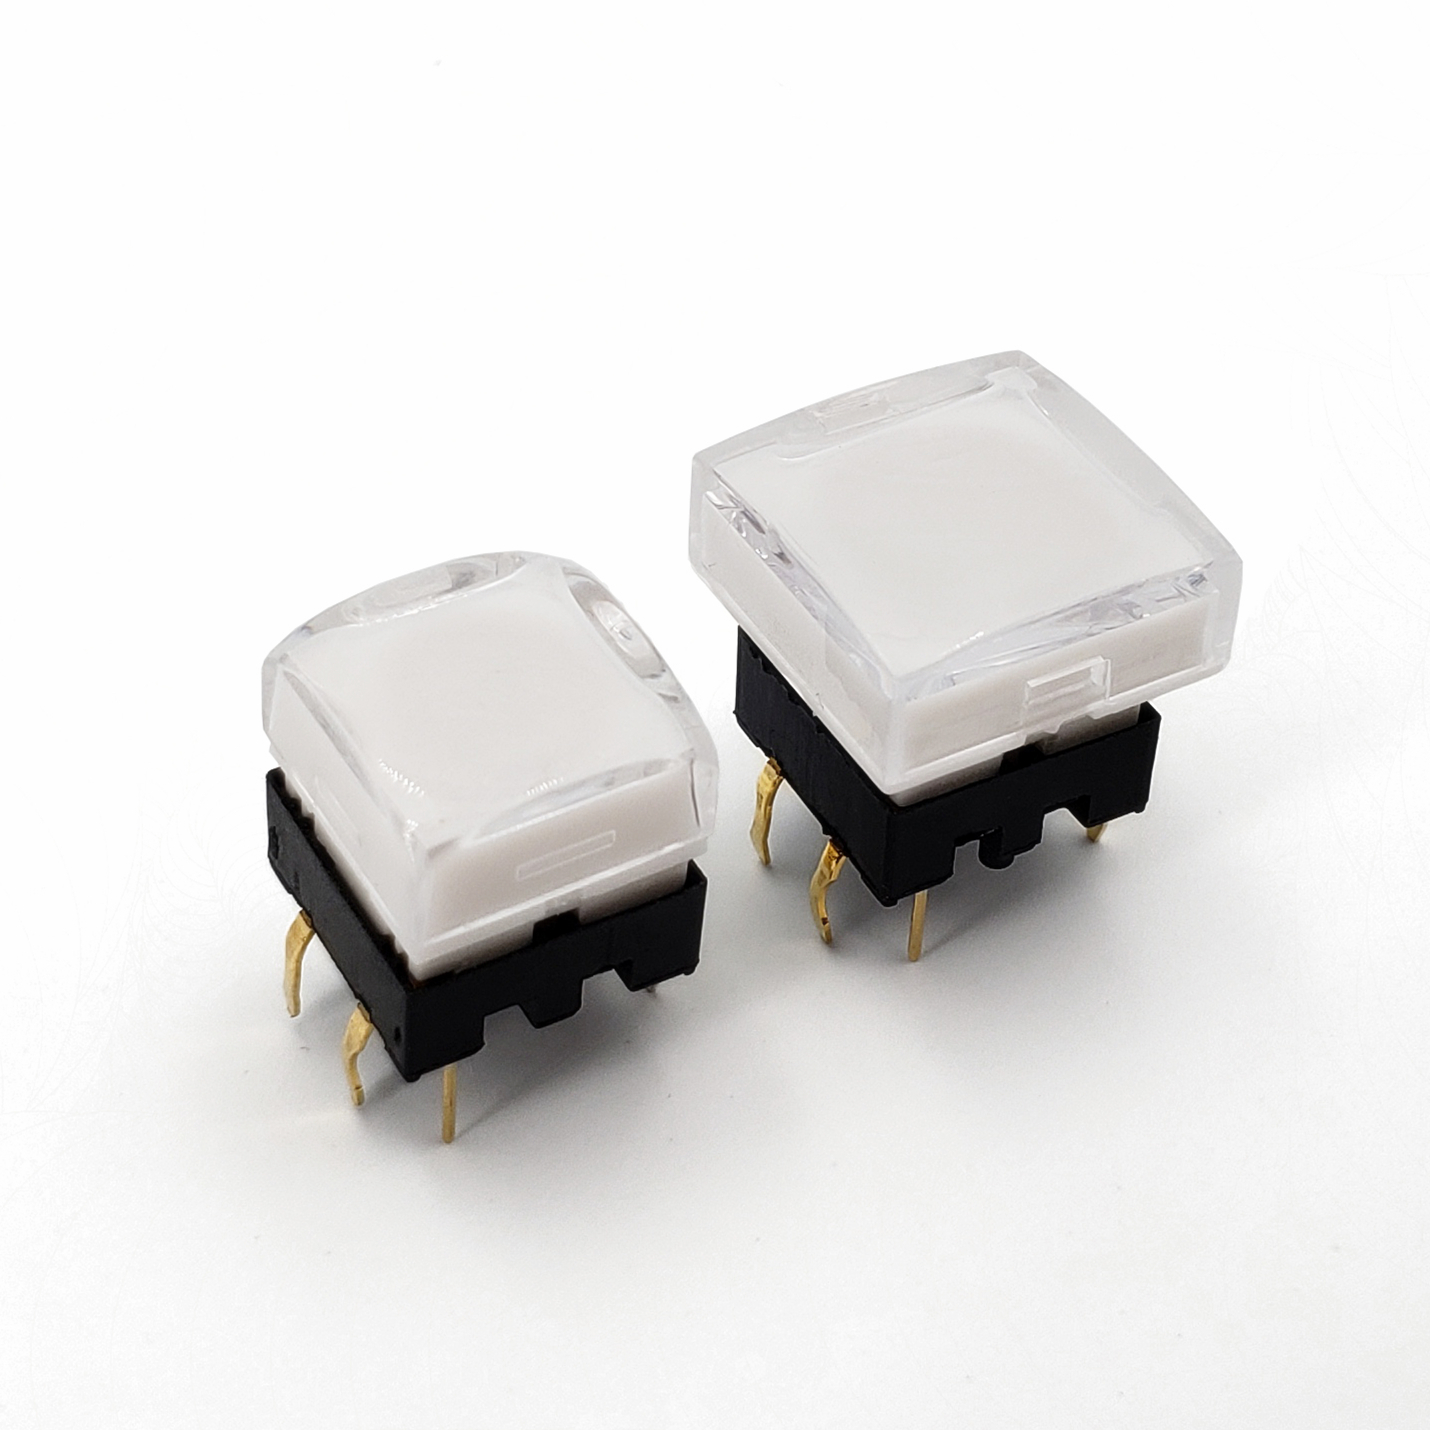 Honyone TS26 Series Square With LED Momentary SPST PCB Mini Push Button Tact Switch